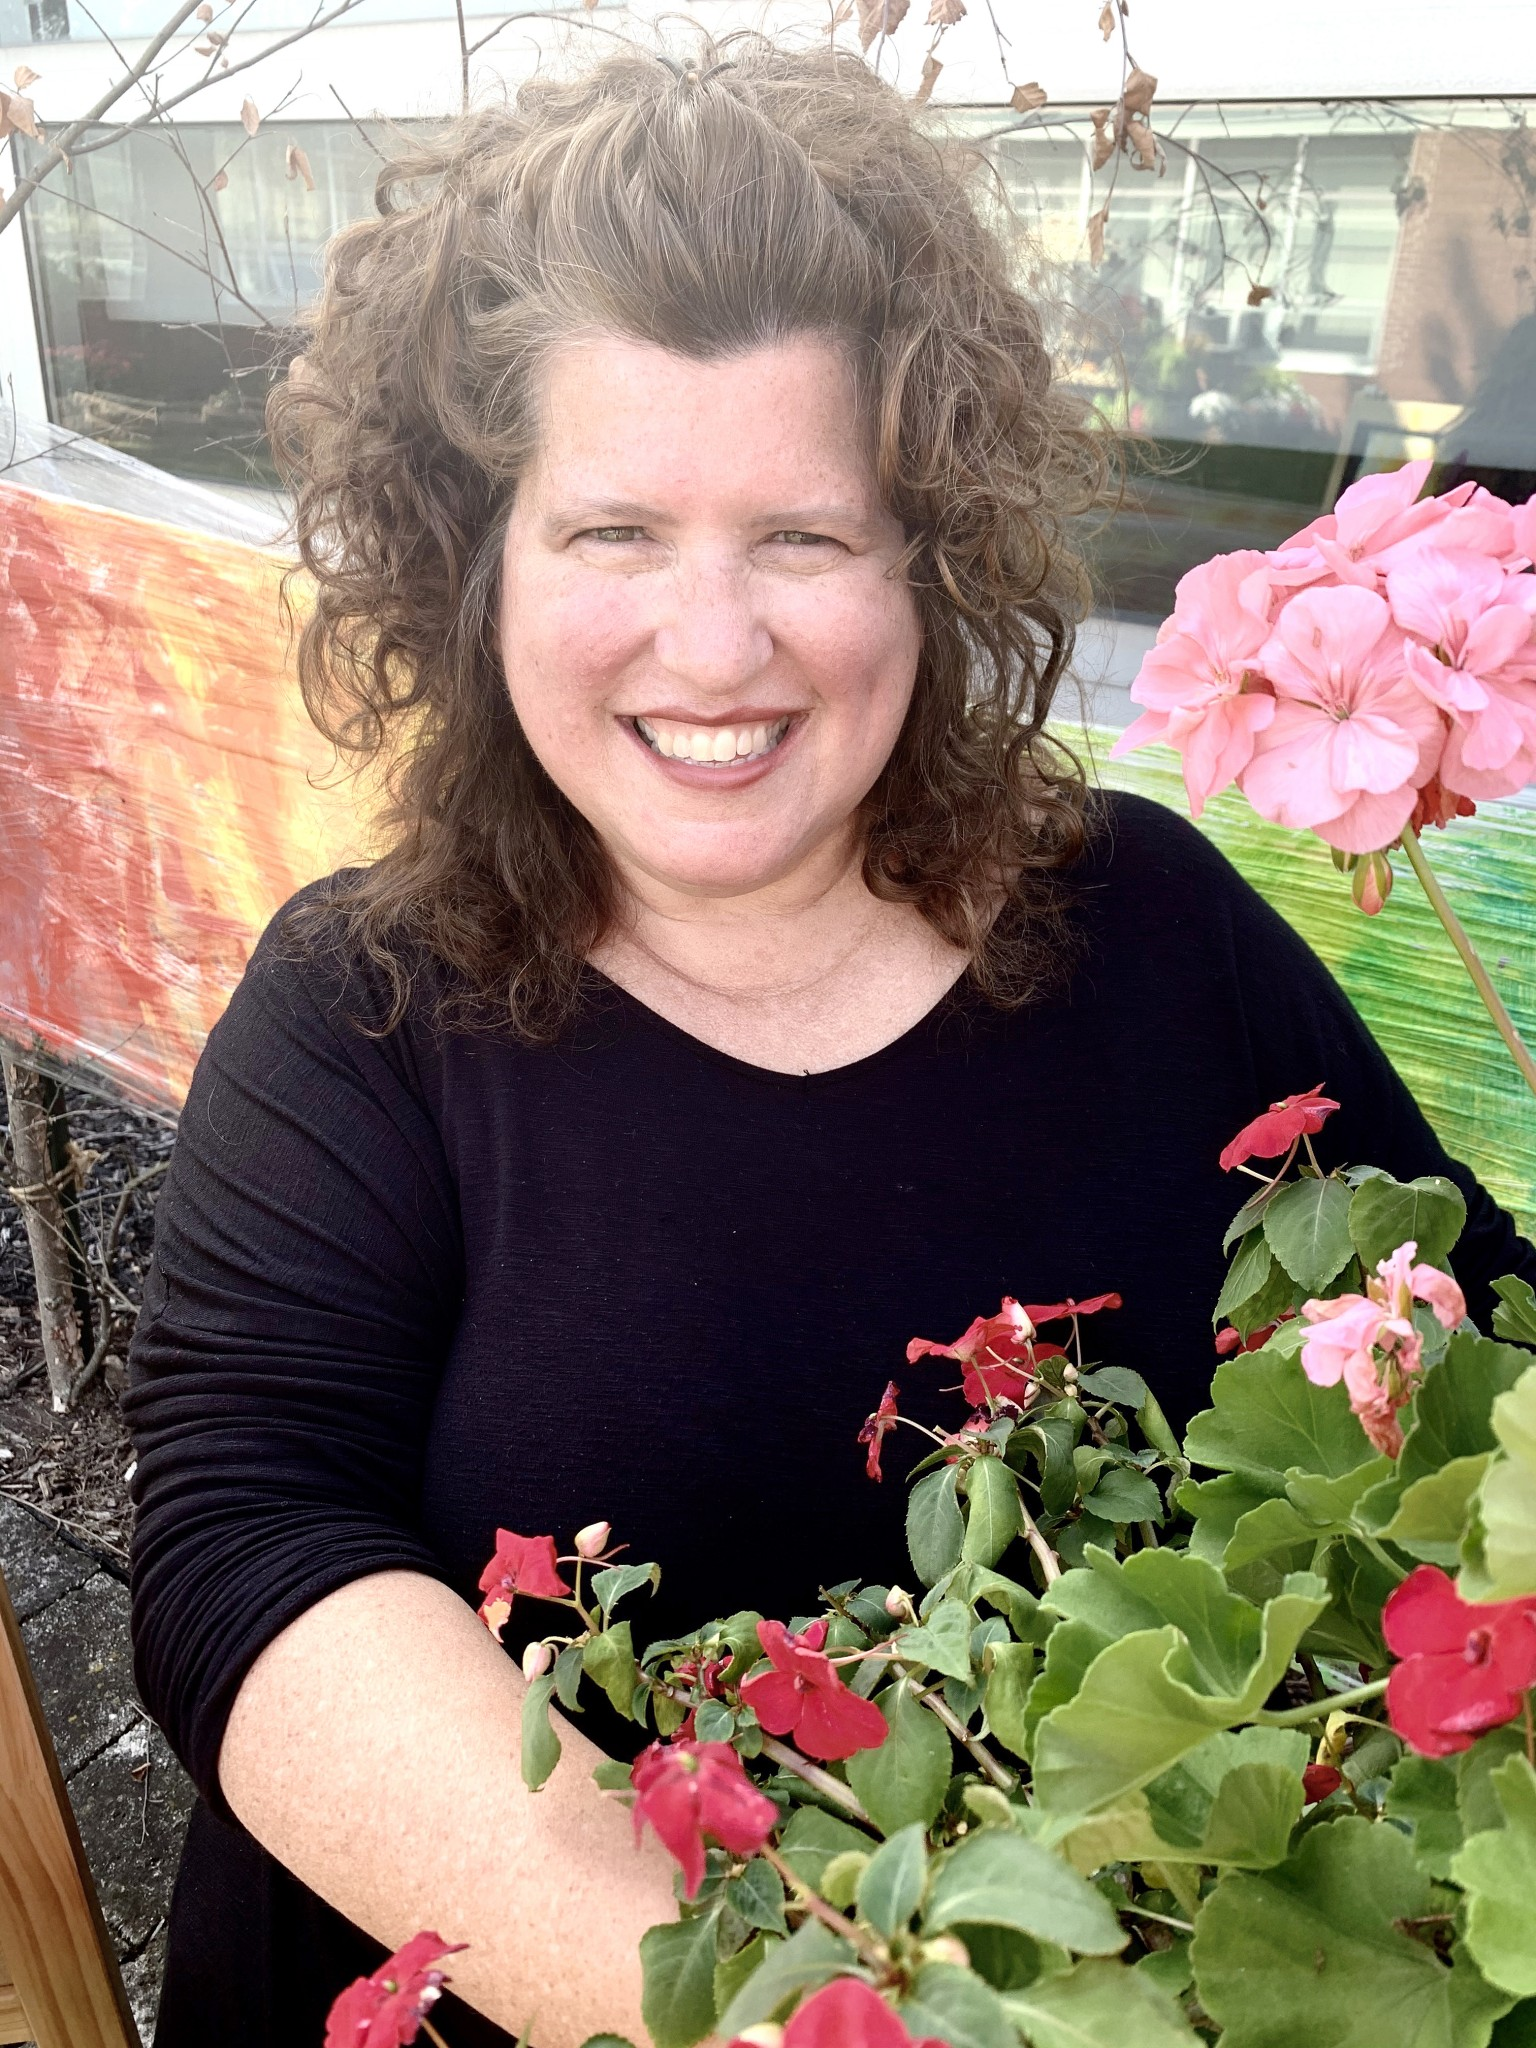 Lake Schools art teacher Laura Lohmann has always found inspiration from nature and art. She recently transformed an unused courtyard into a nature-inspired studio for the district's smallest artists. (Submitted photo)